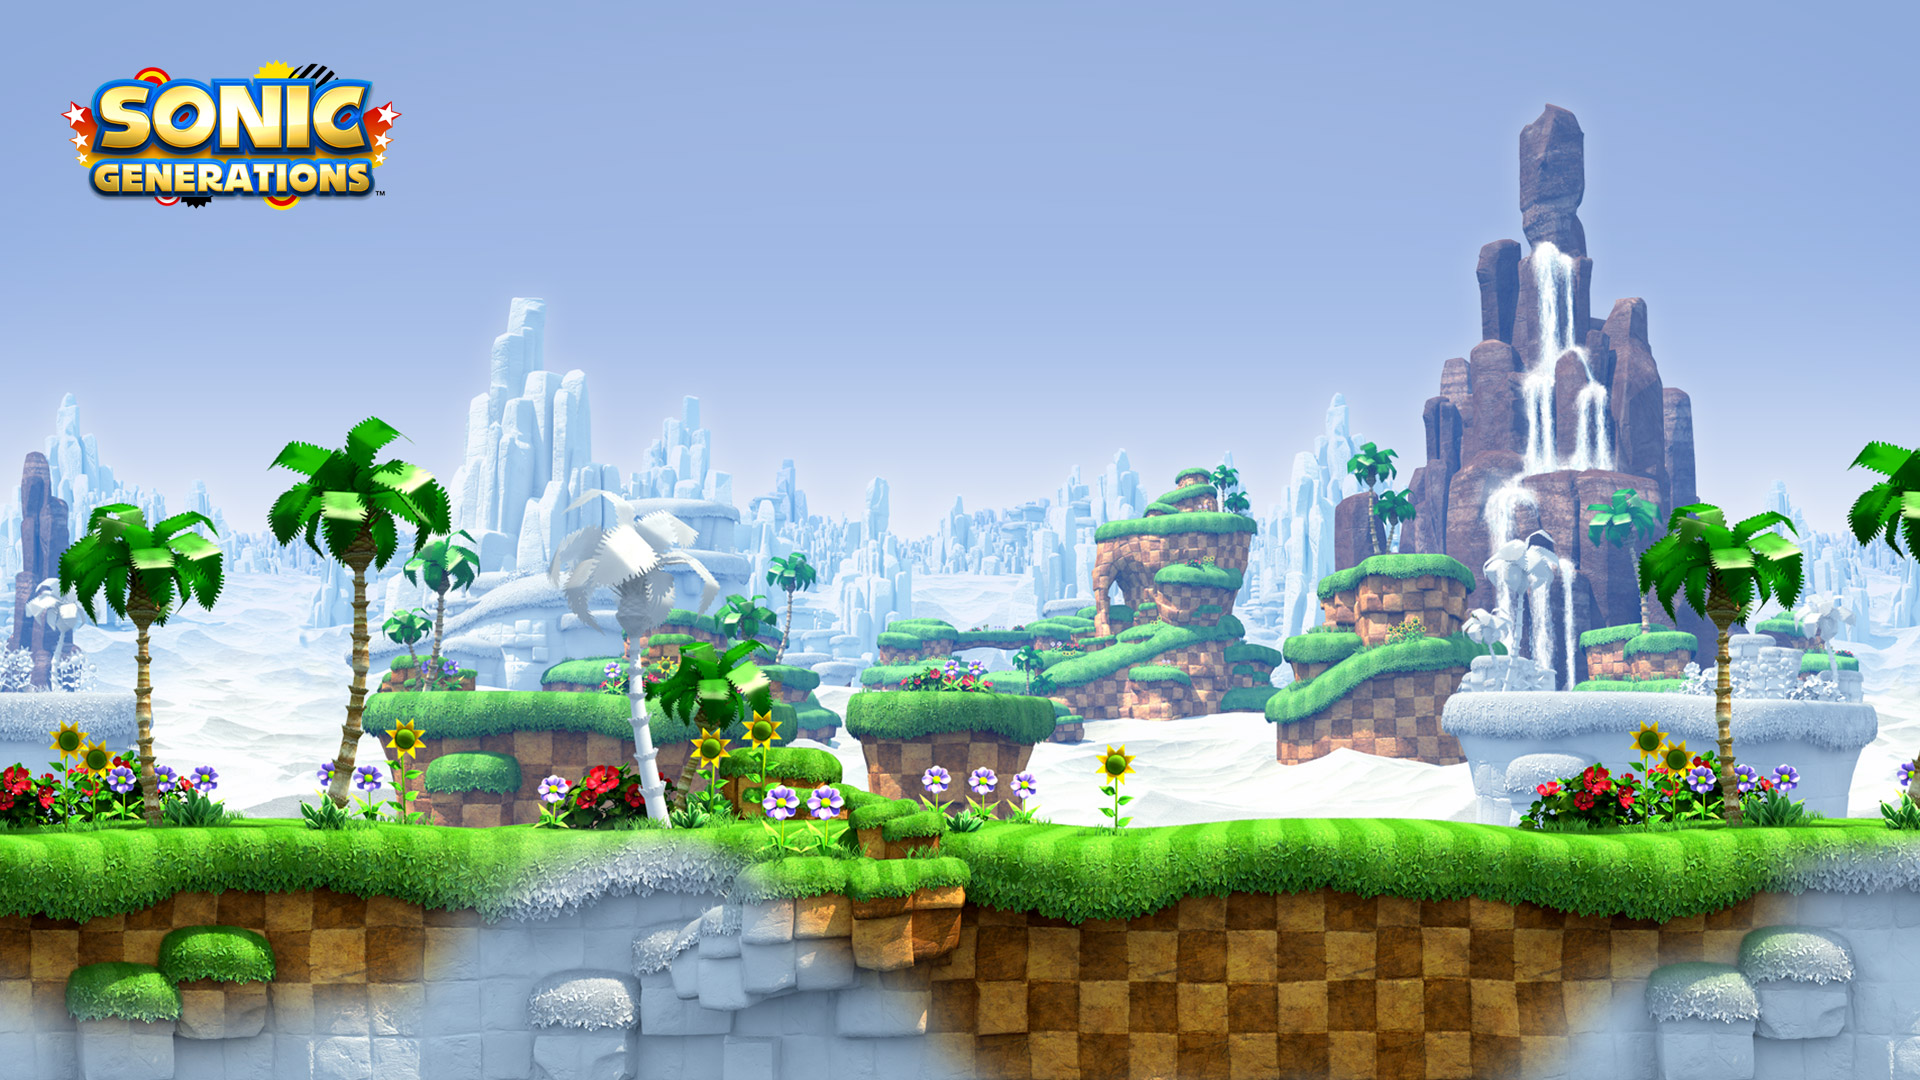 Sonic Generations Wallpaper in 1920x1080